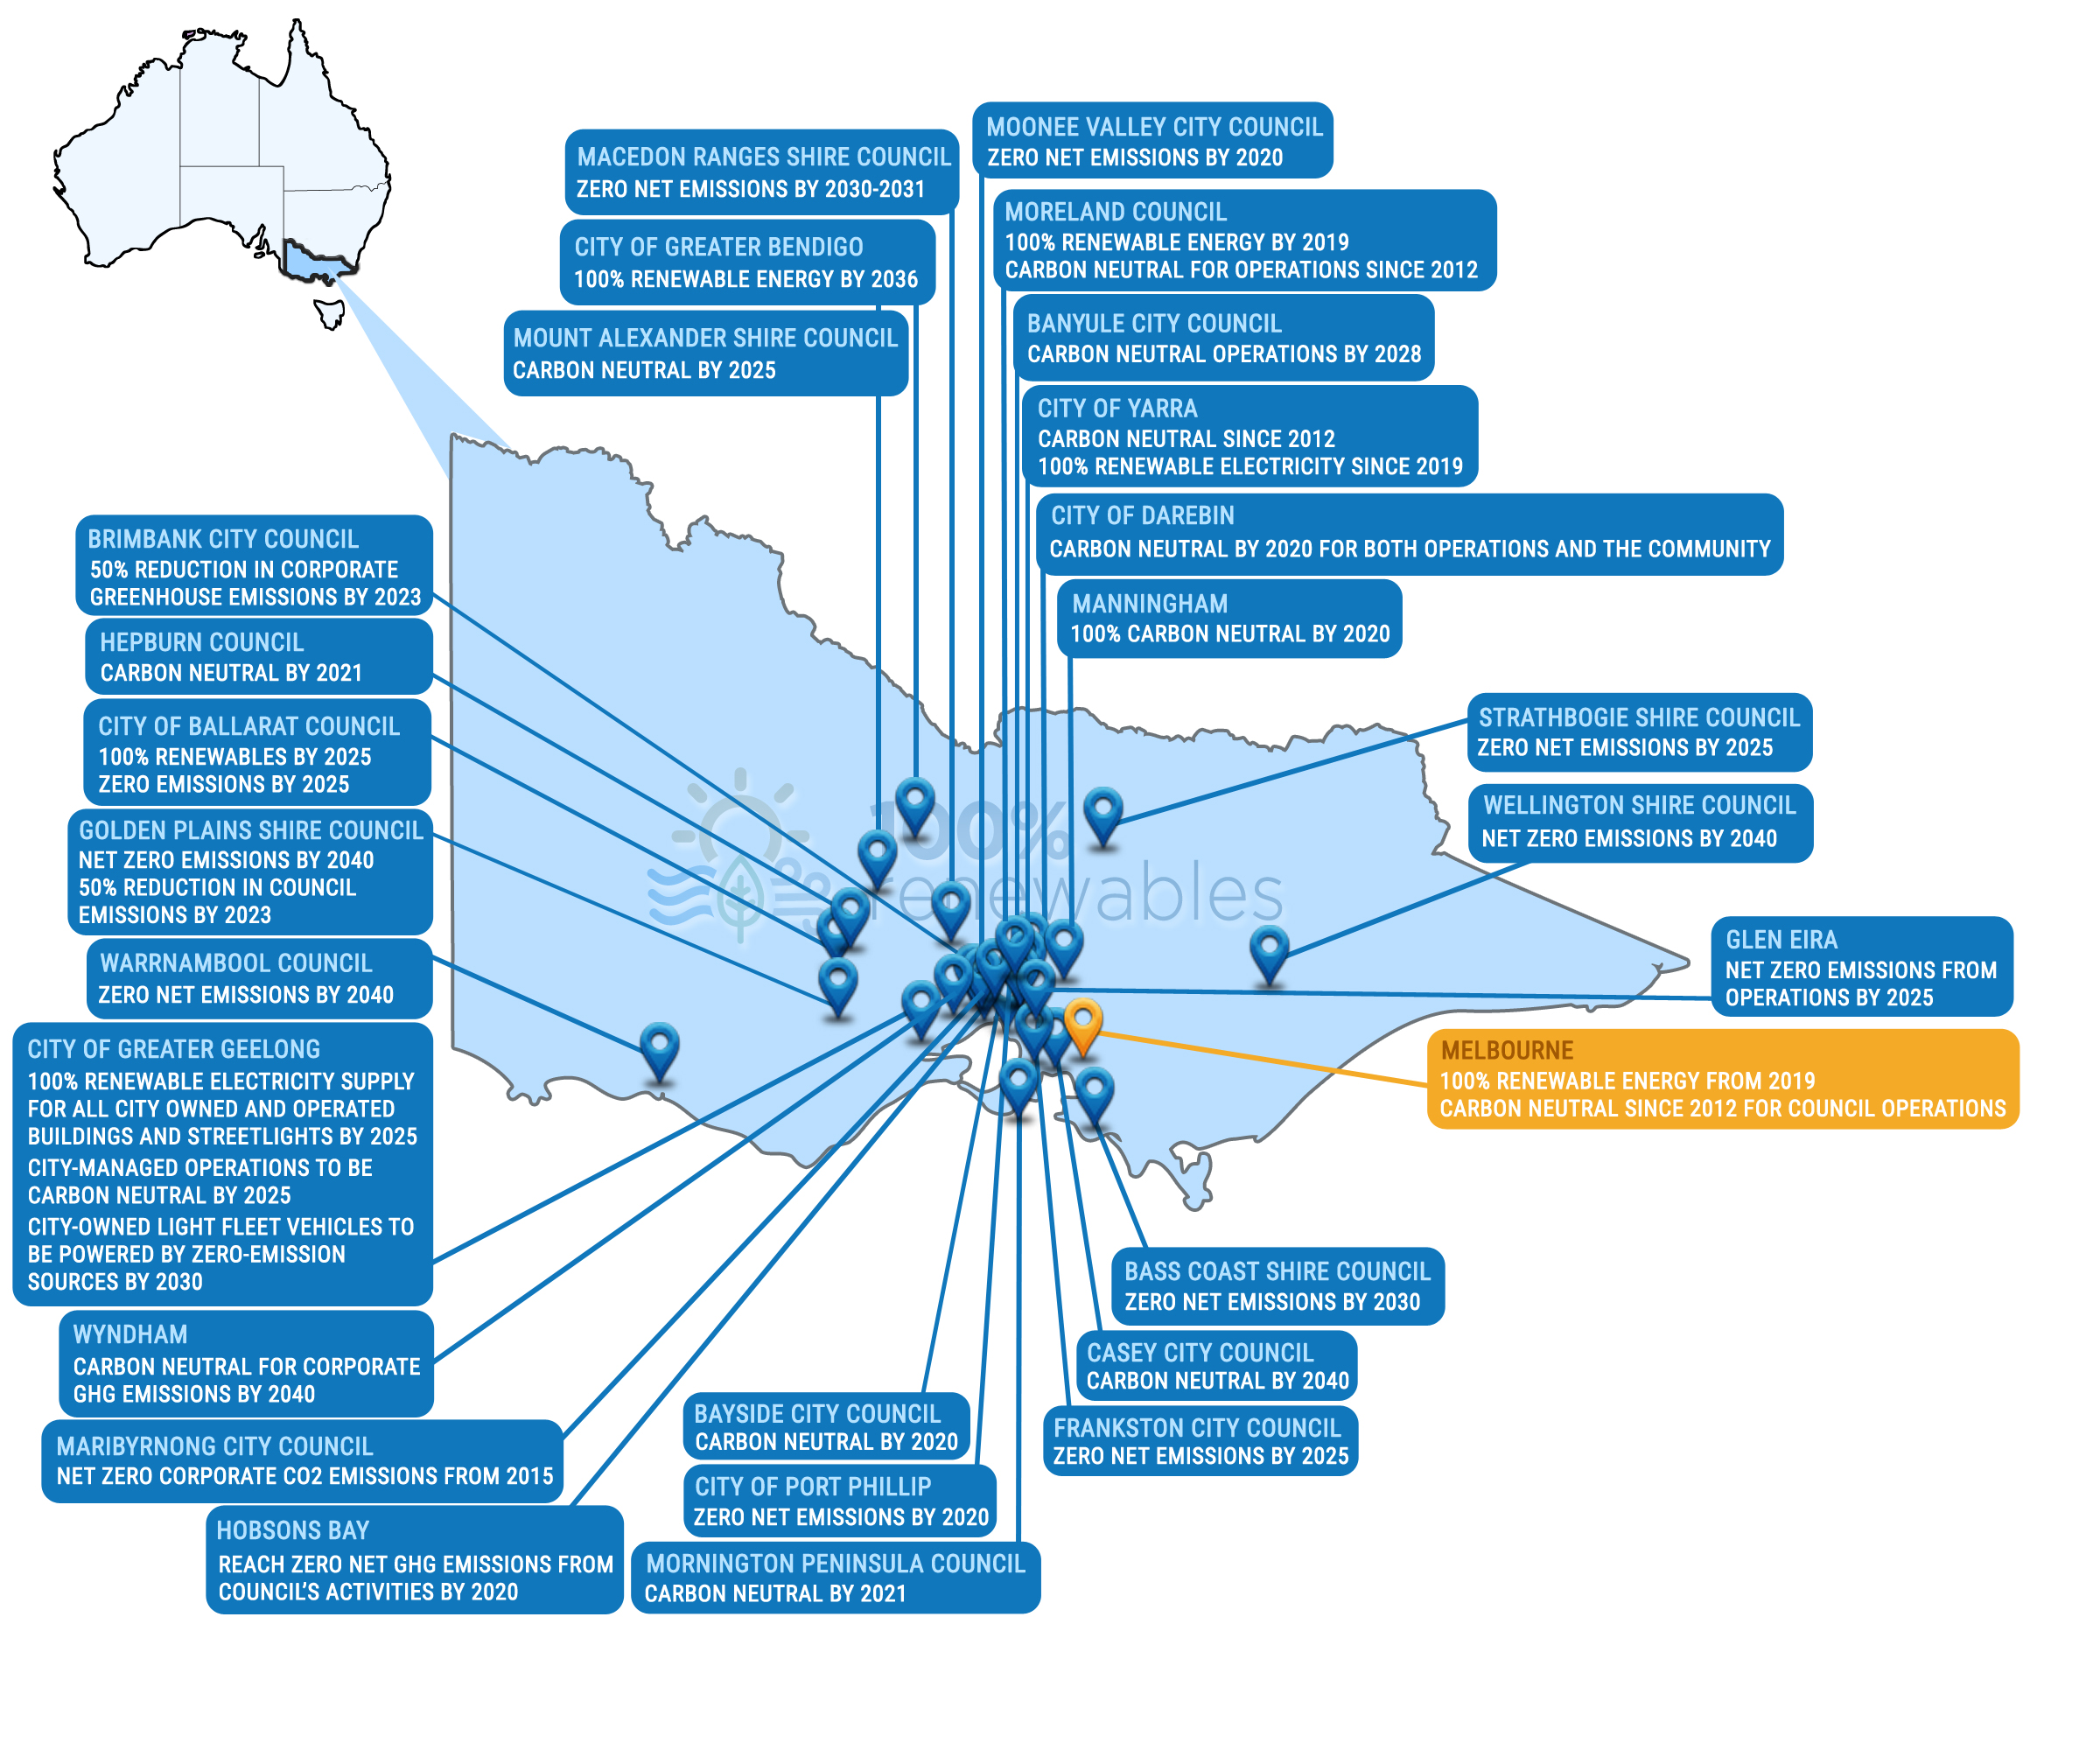 Ambitious renewable energy and carbon commitments by local governments in VIC as at Sep 2020